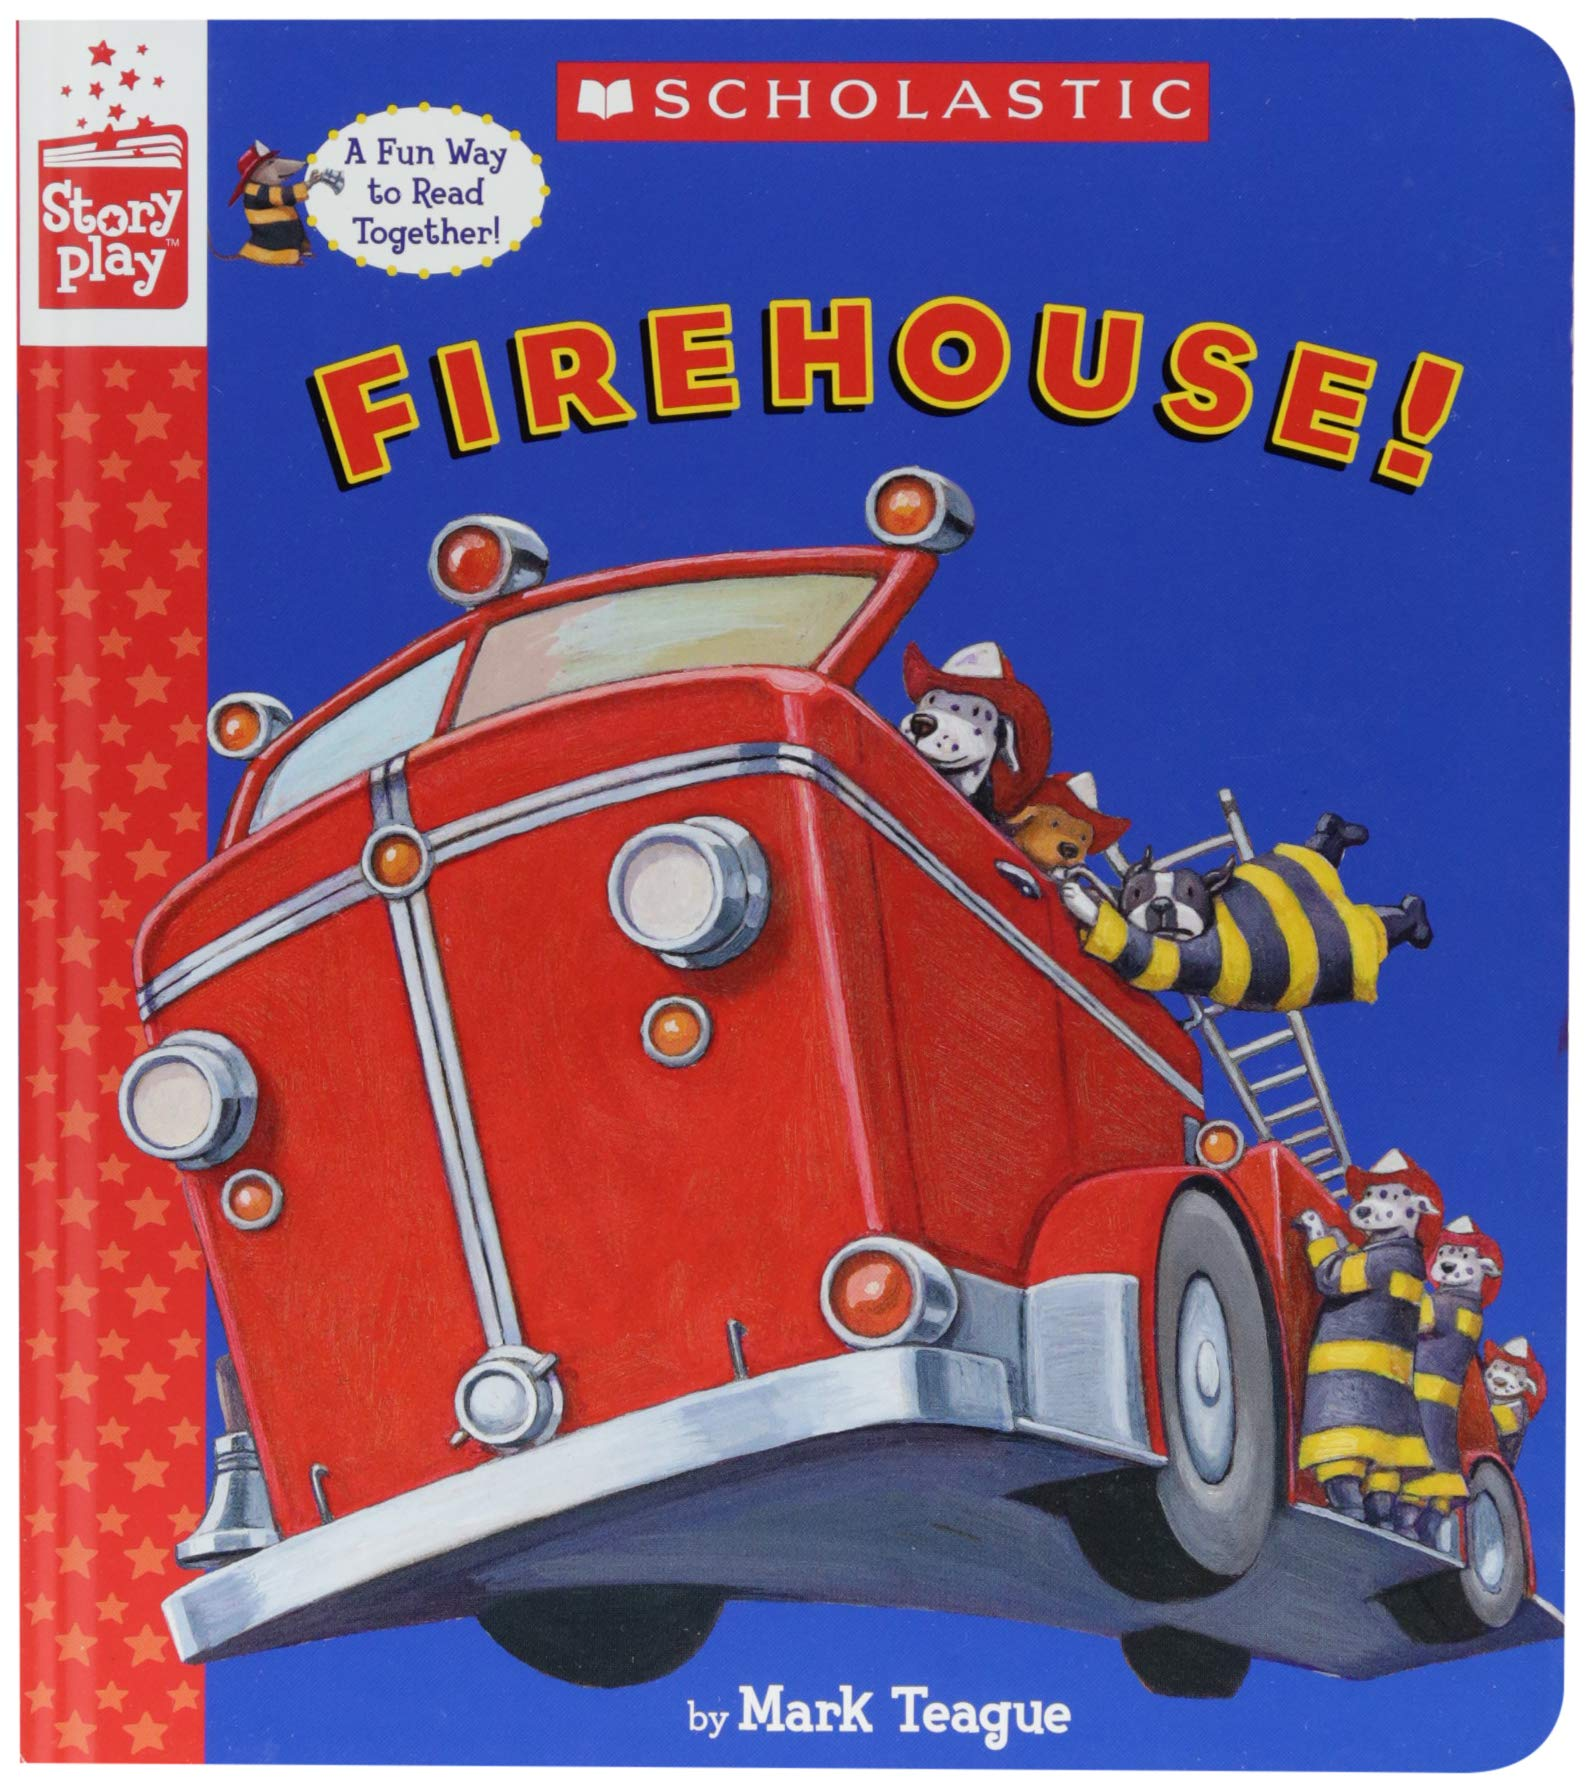 Firehouse! (A StoryPlay Book) PDF